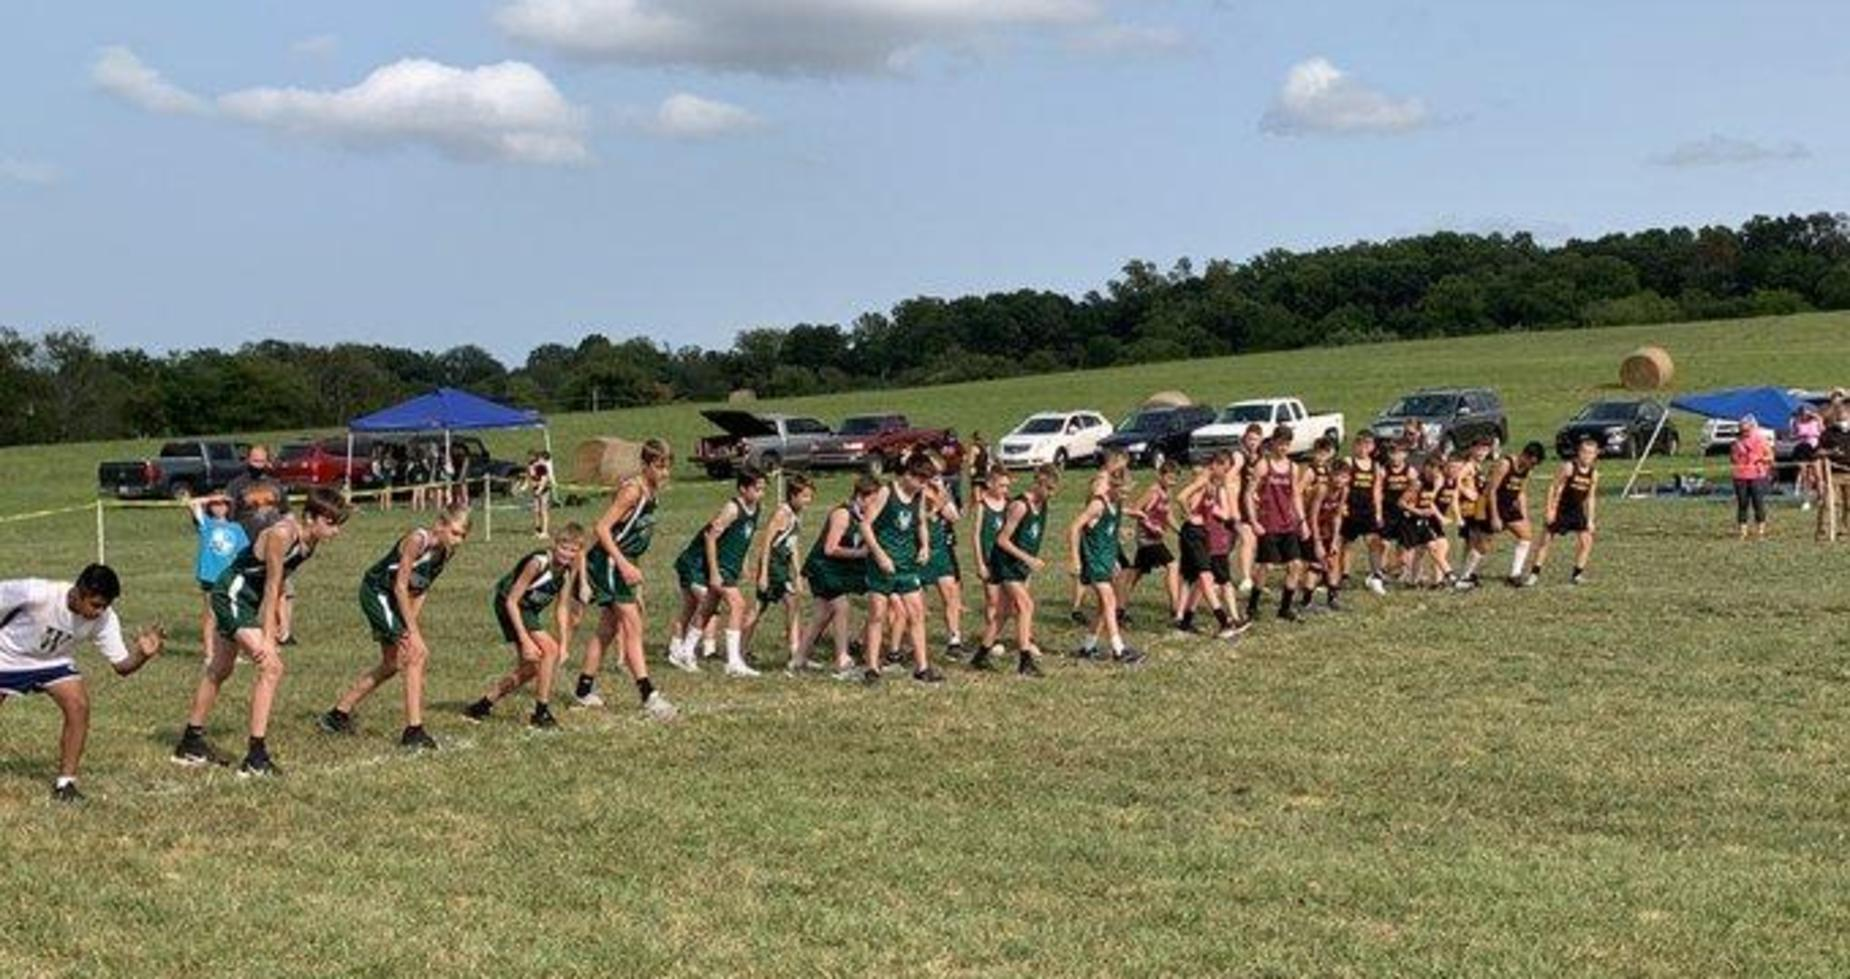 Cross country starting line